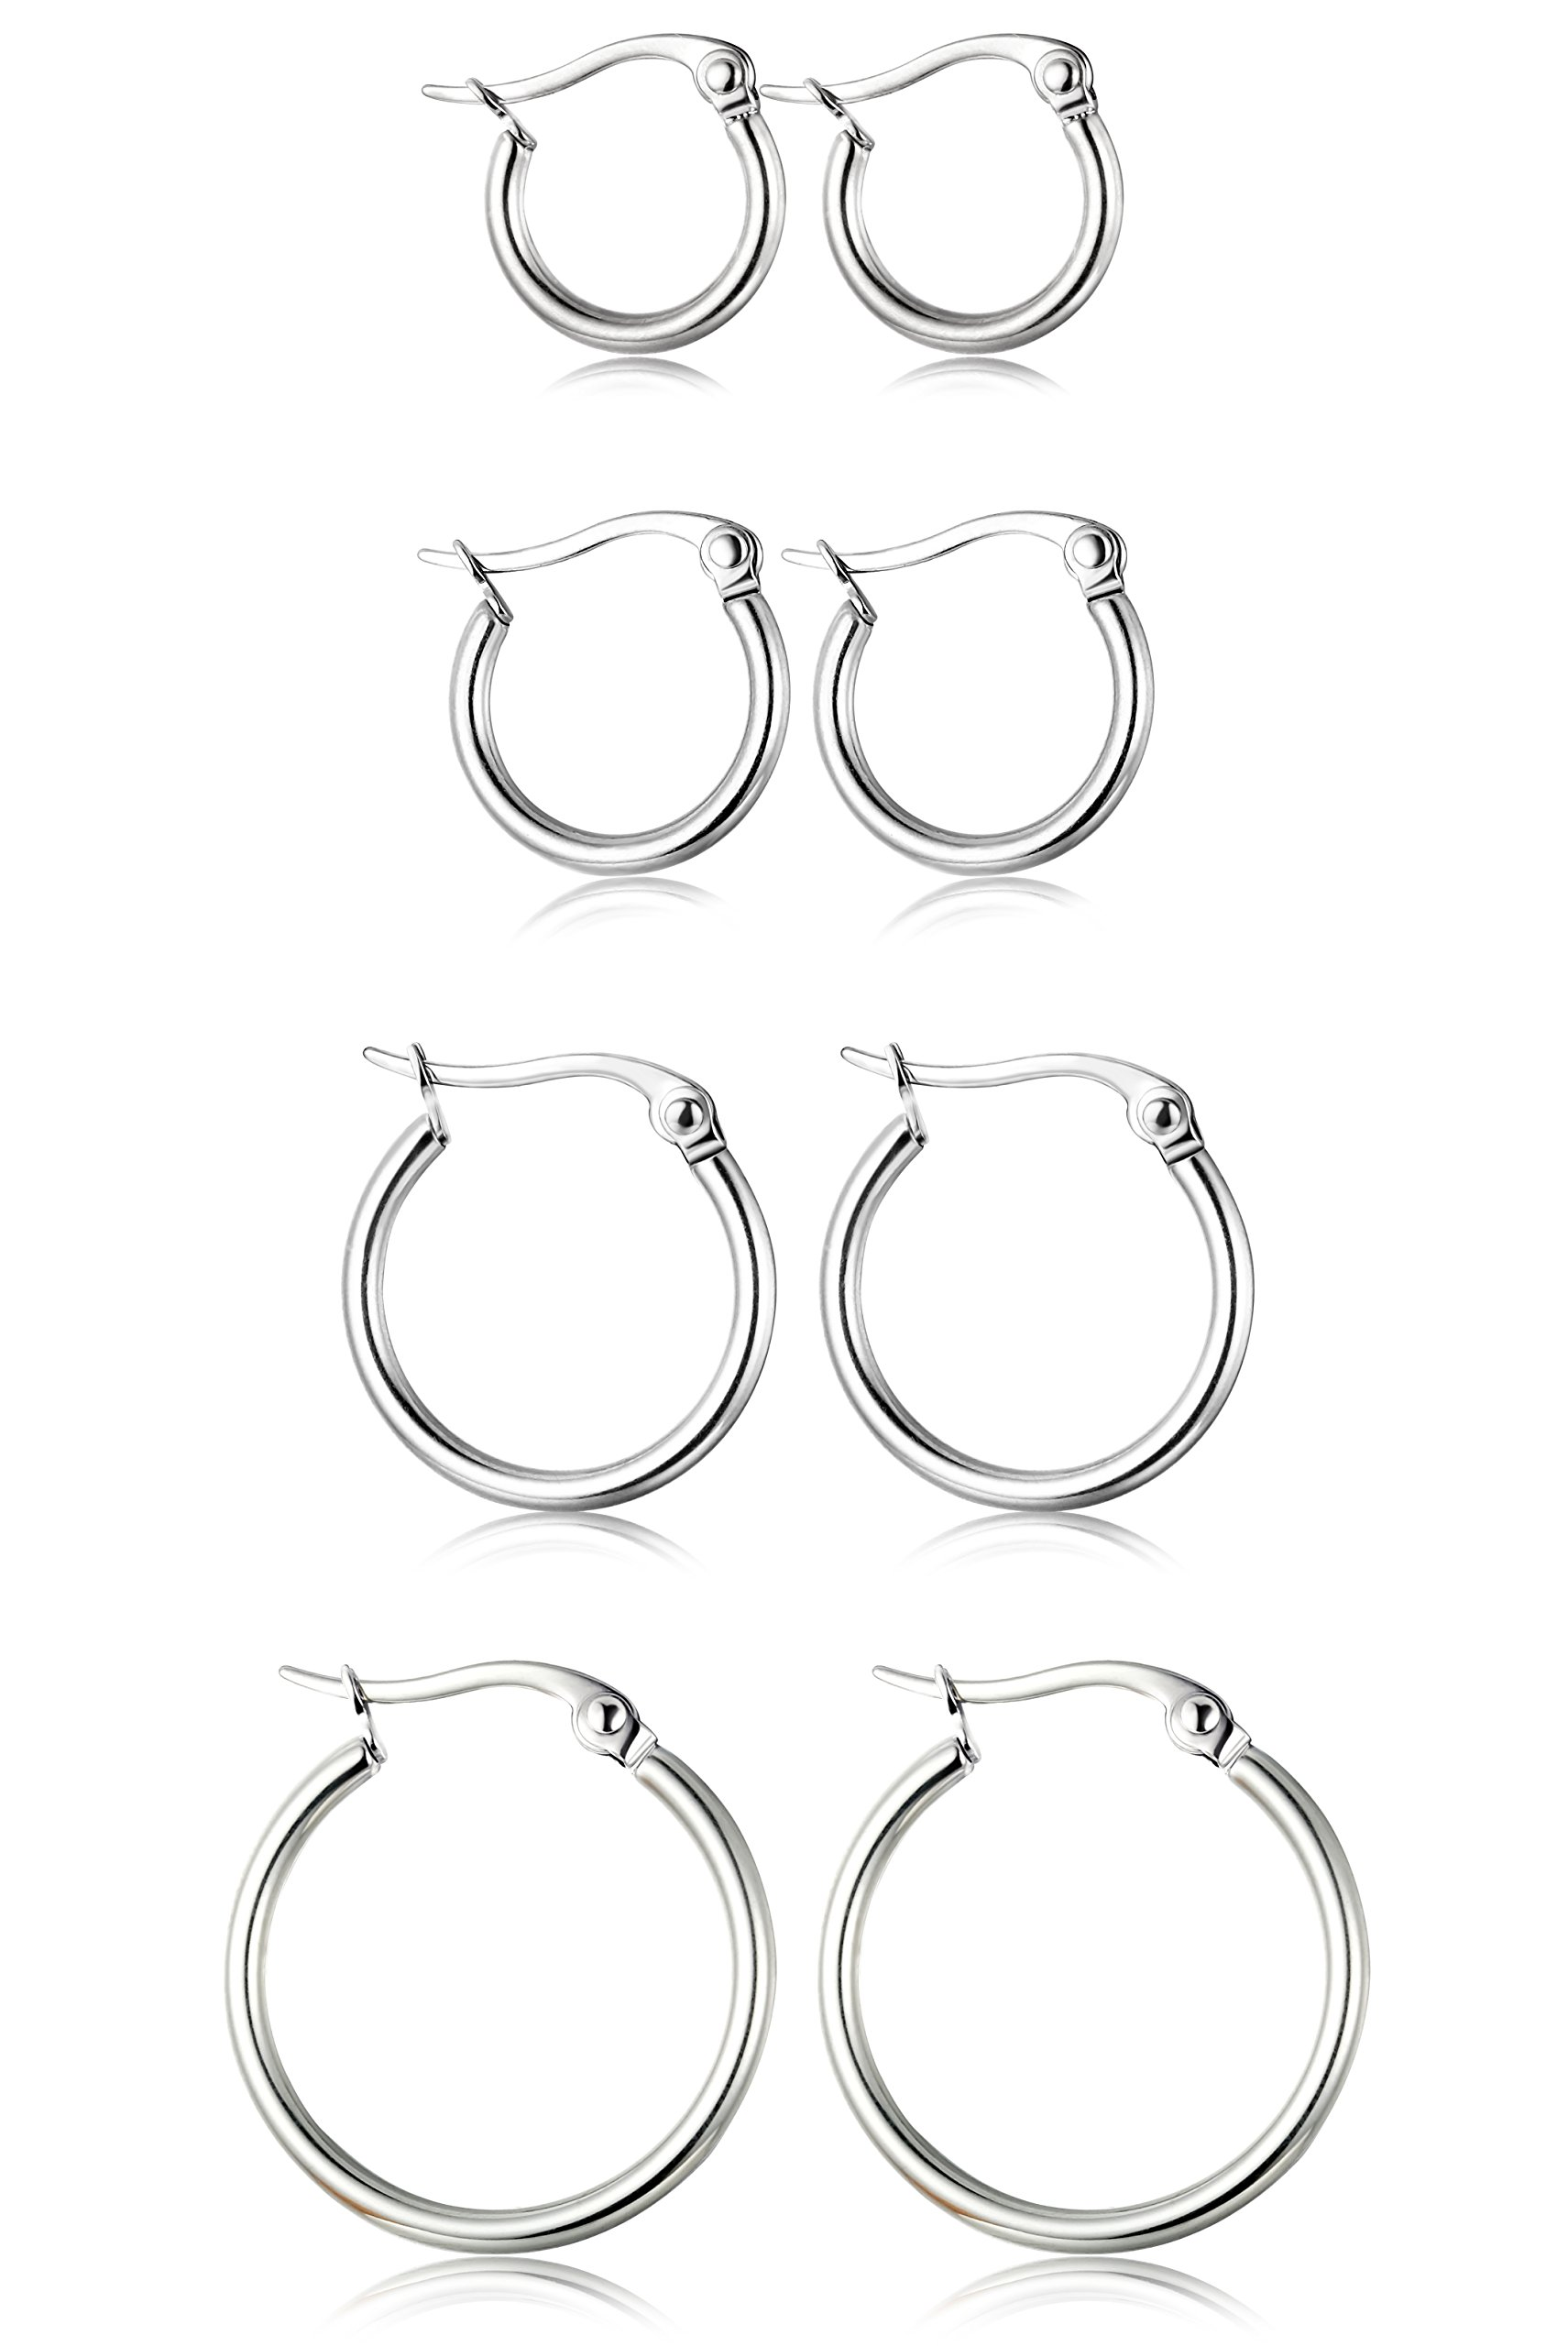 ORAZIO 4 Pairs Stainless Steel Hoop Earrings Set Cute Huggie Earrings for Womena,Silver-Tone,10MM-20MM by ORAZIO